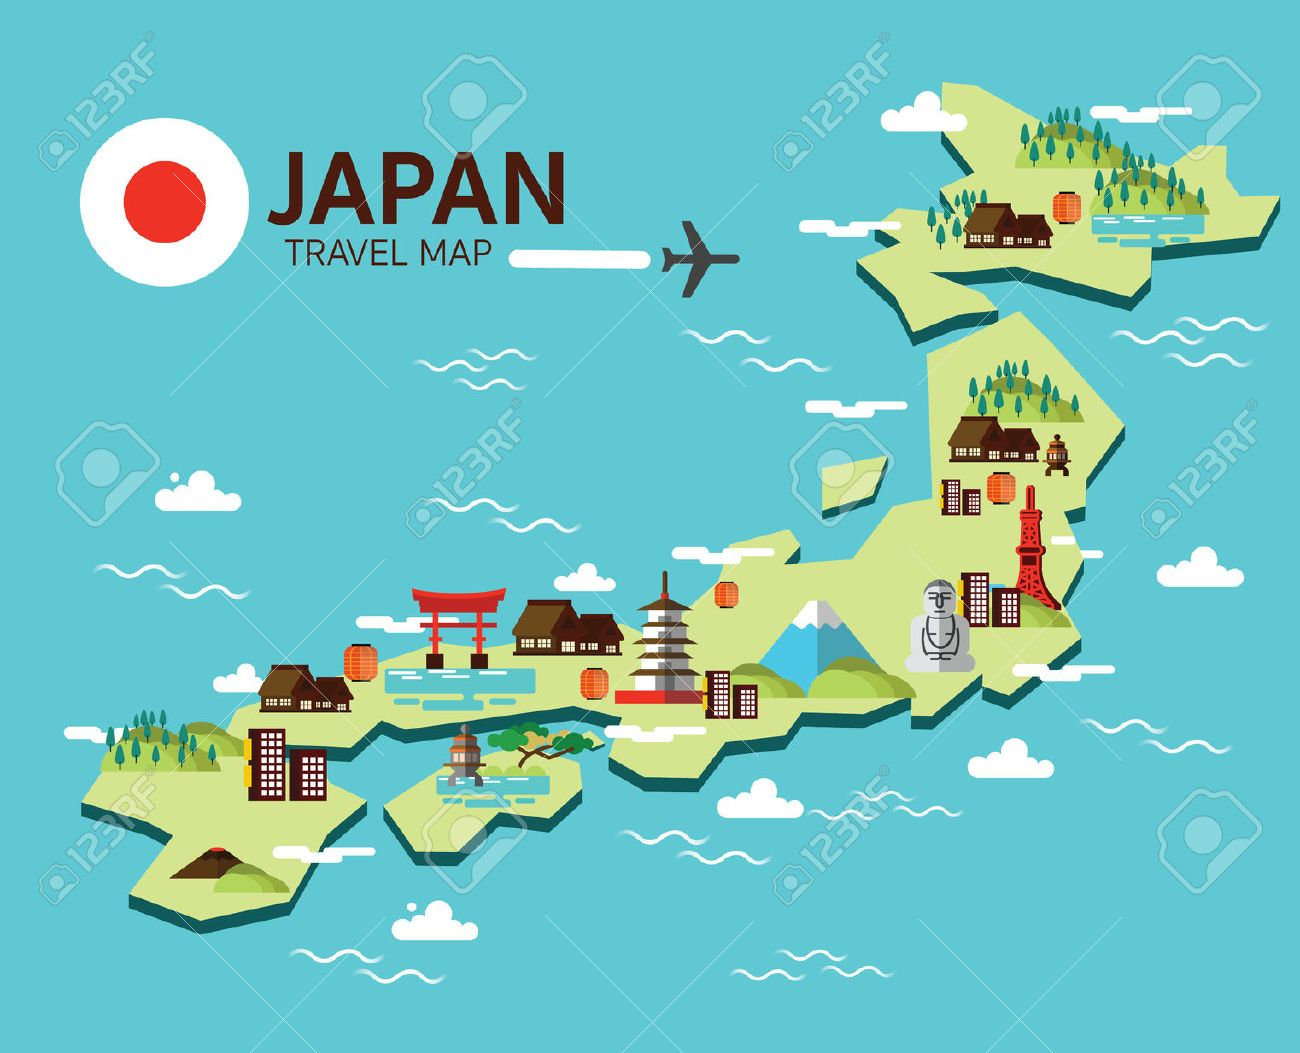 Japan Landmark And Travel Map Flat Design Elements And Icons